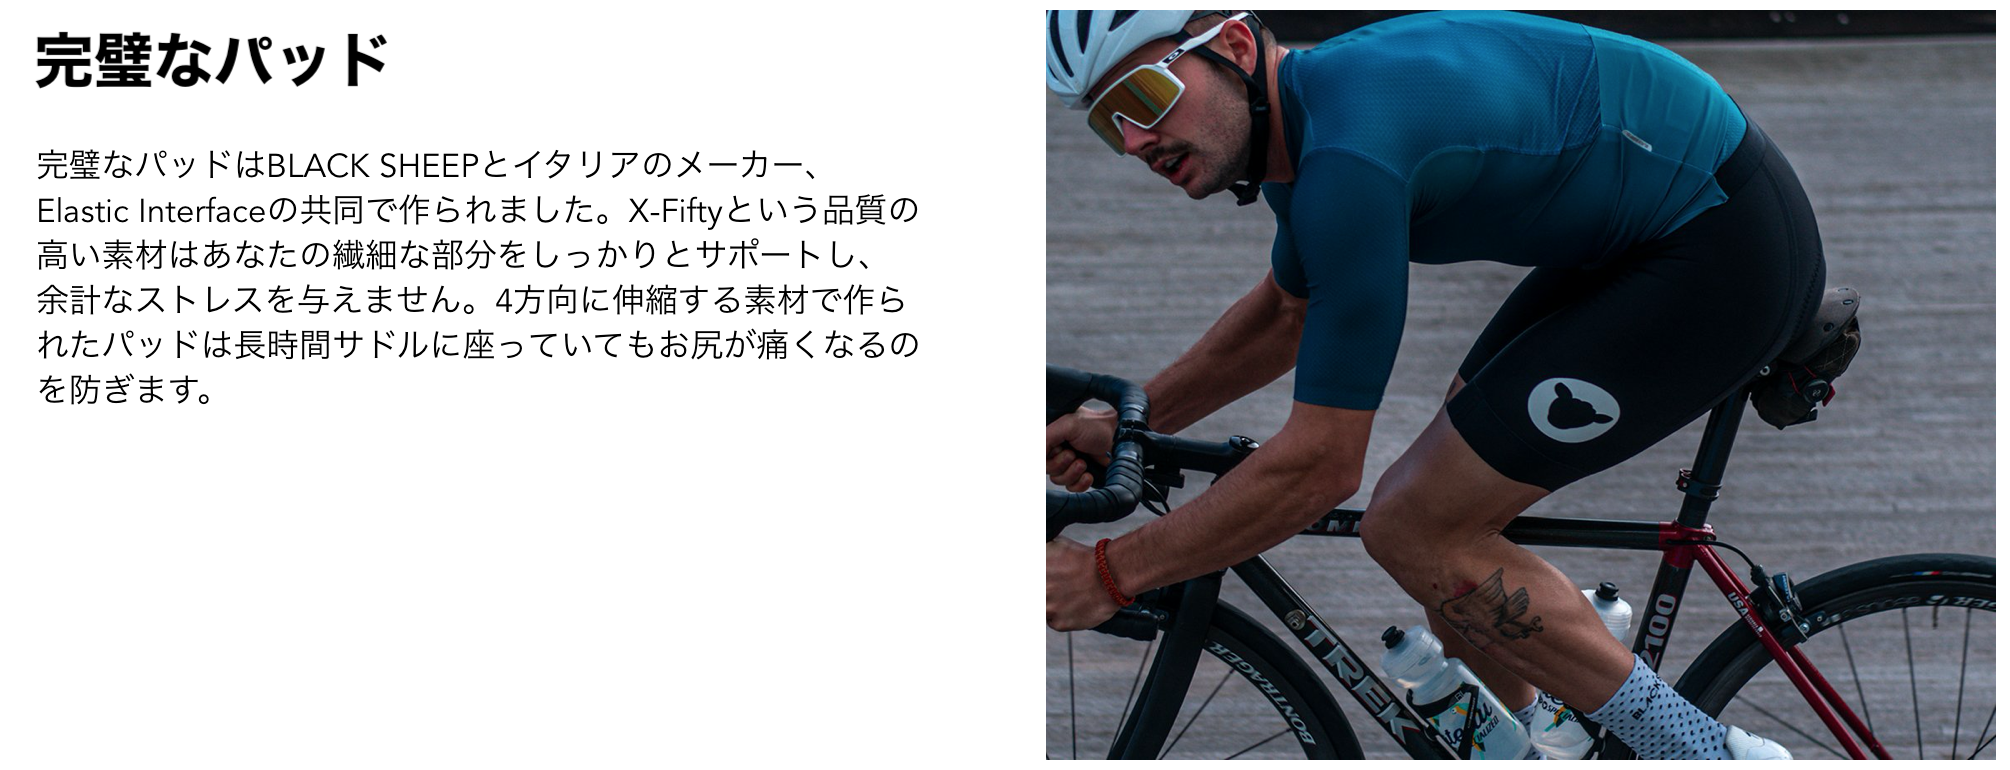 Black Sheep RACING サイクルビブショーツ - Black/White  |  CYCLISM